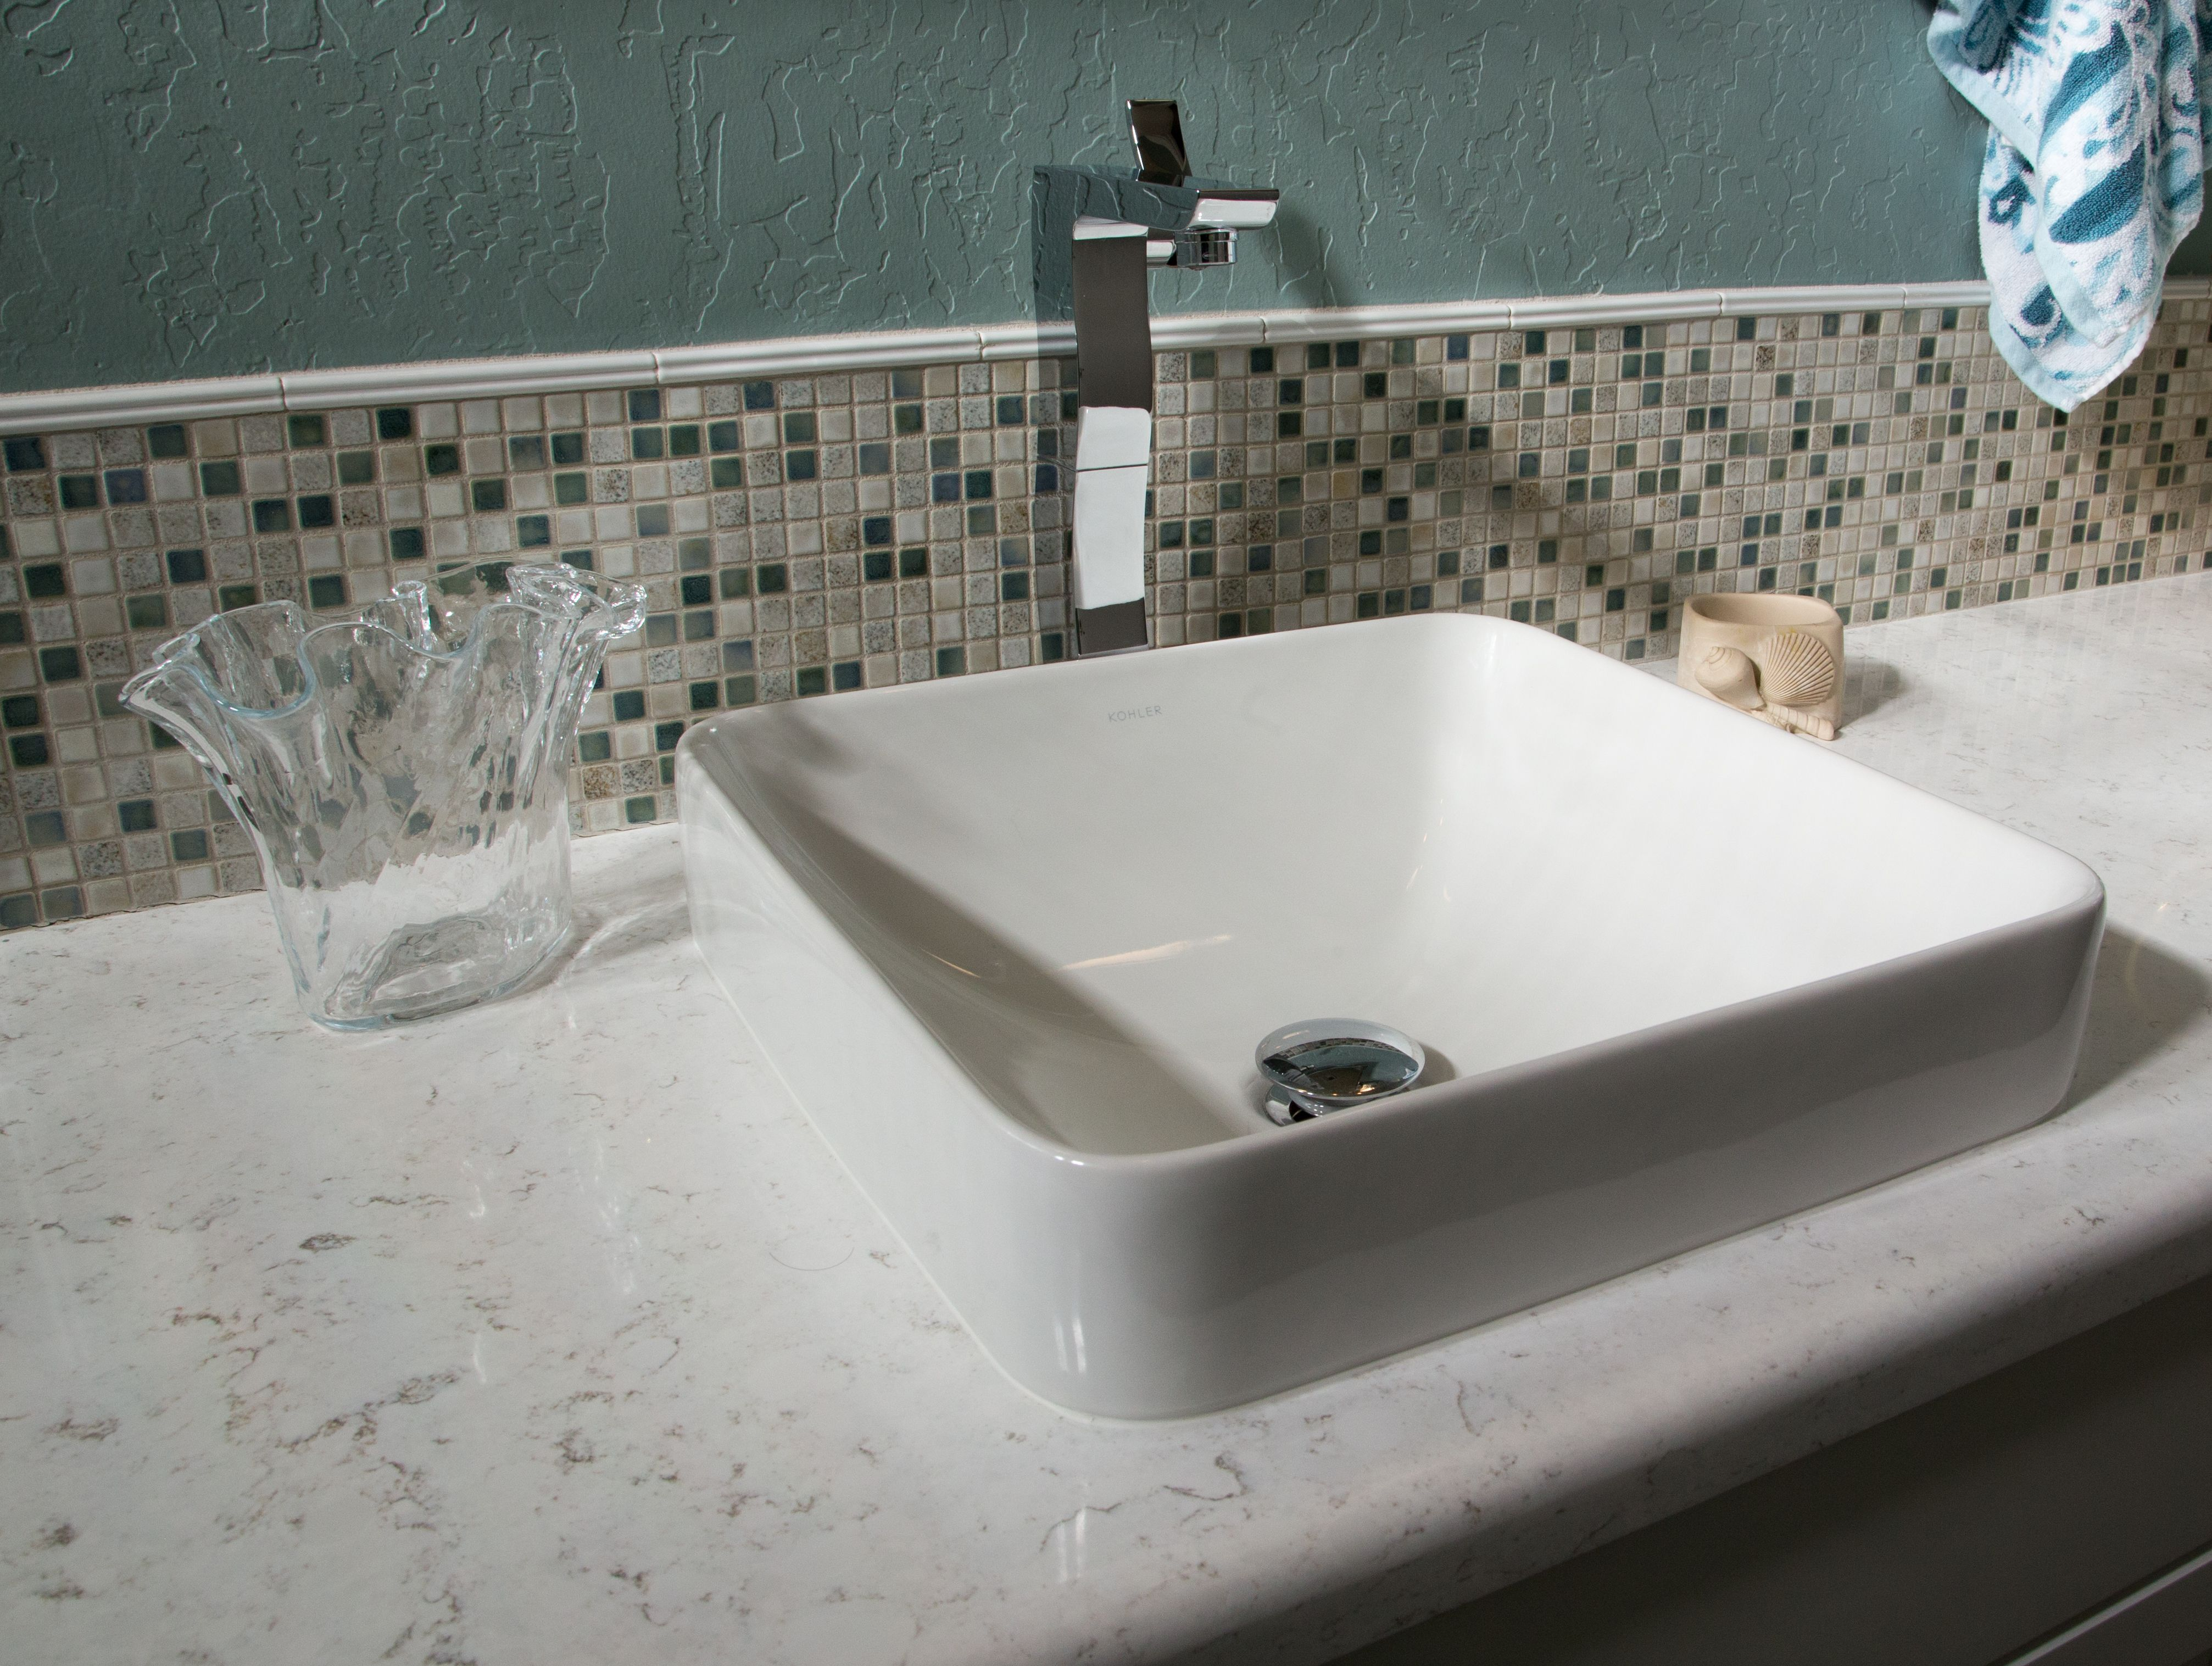 From Beachy Getaways To Modern And Simple Designs Twd Is Your Contractor Of Choice For Your Next Bathroomremodel T Bathrooms Remodel Remodel Dream Bathrooms [ jpg ]